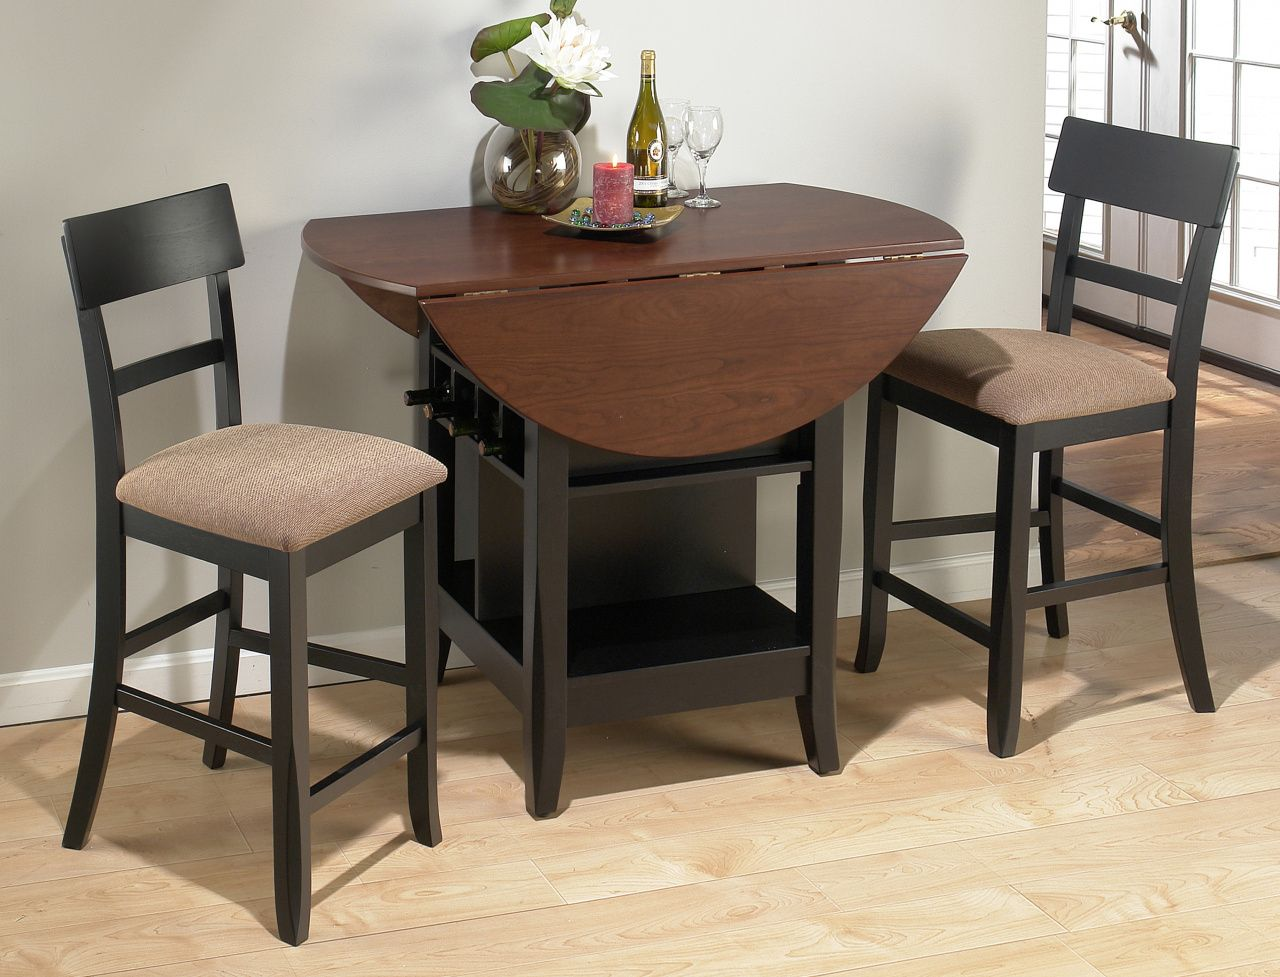 small 2 person kitchen table   luxury home office furniture check more at http   small 2 person kitchen table   luxury home office furniture check      rh   pinterest com